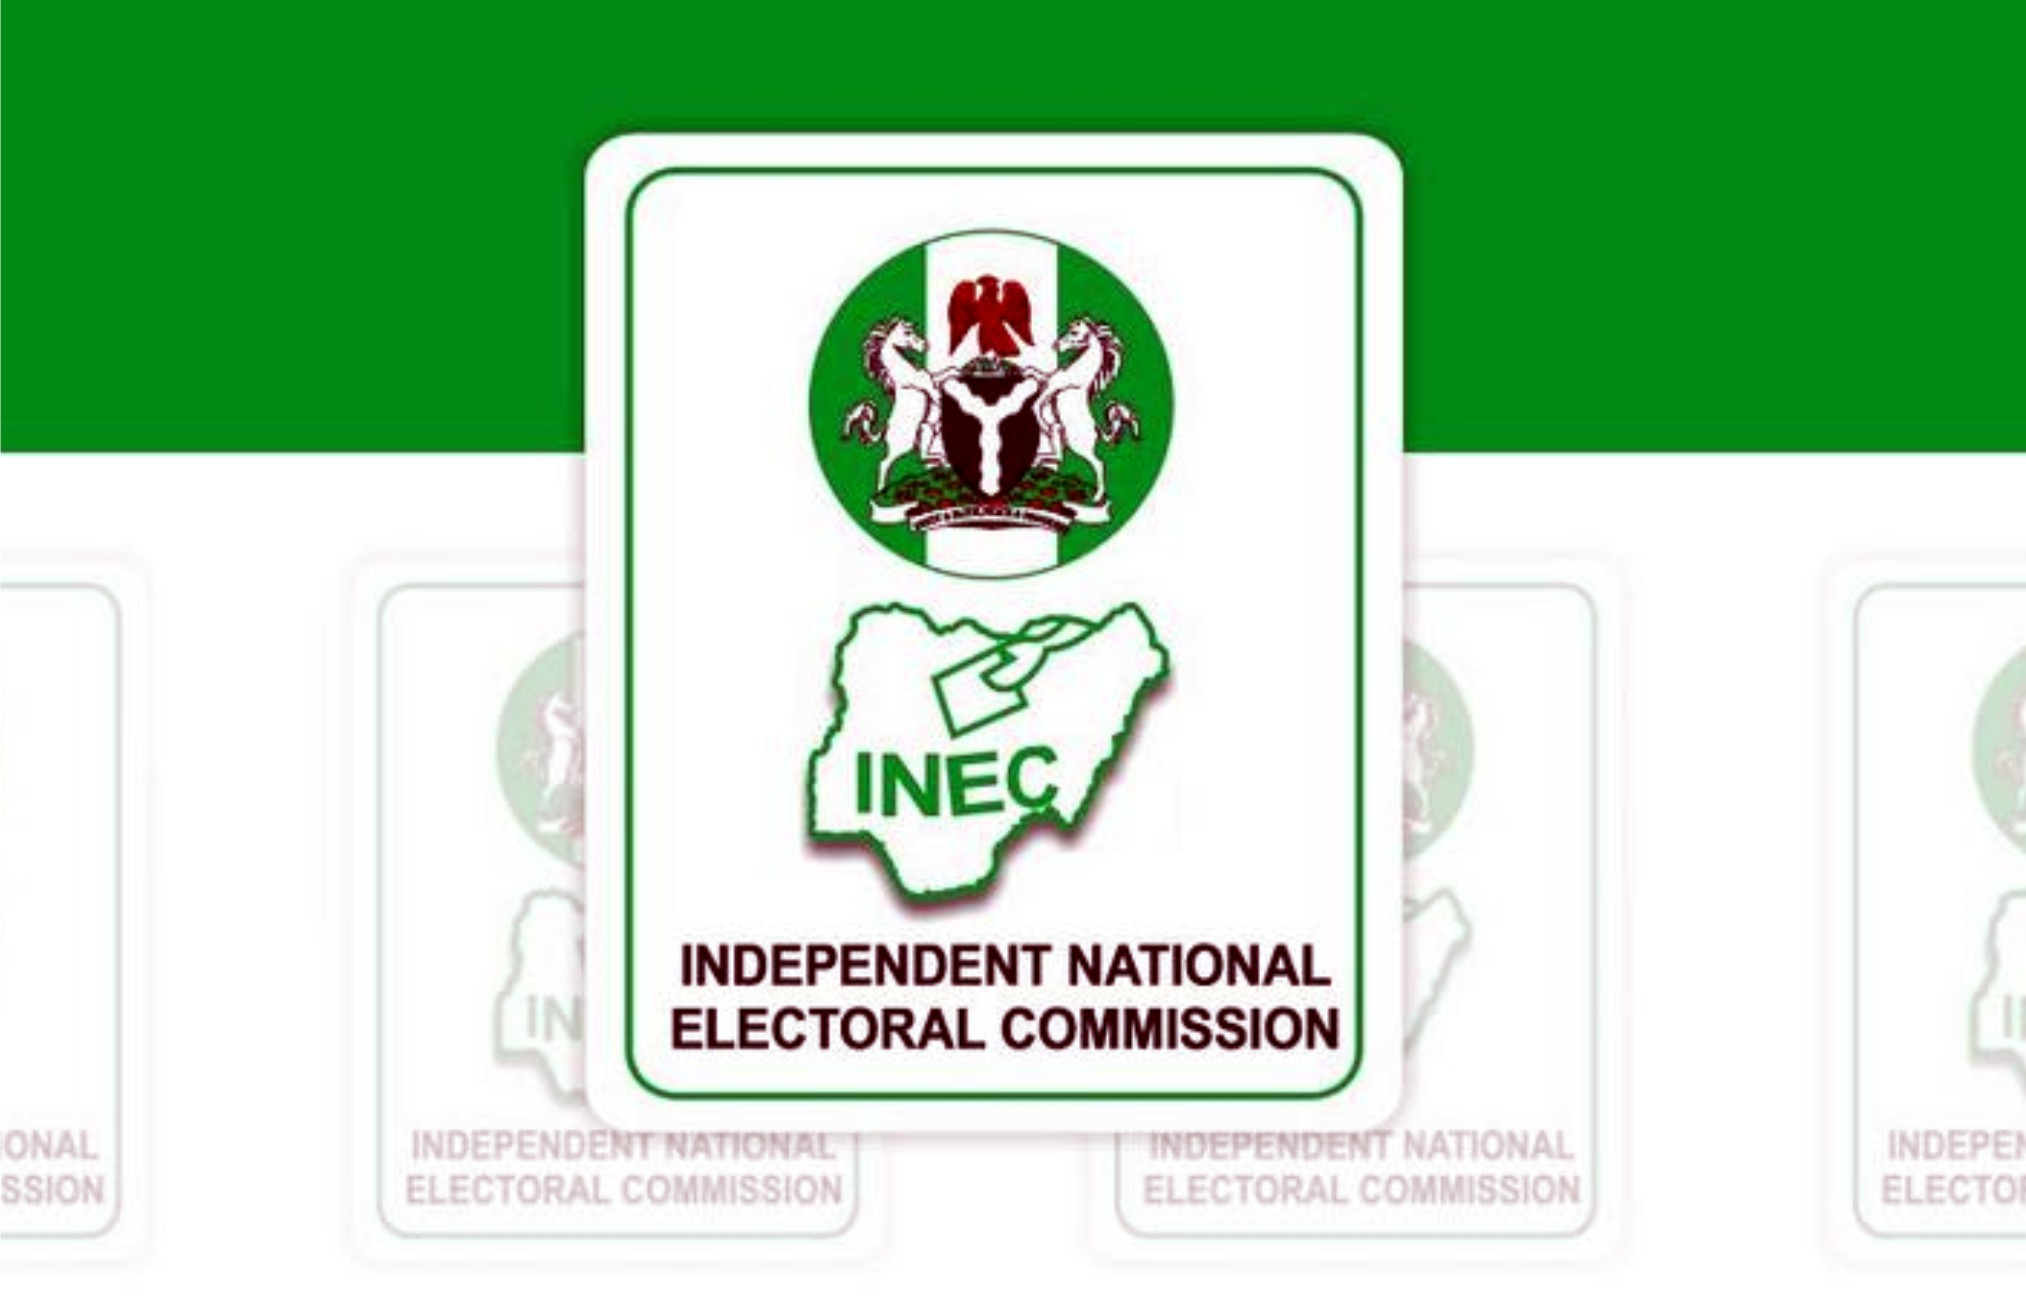 functions of INEC